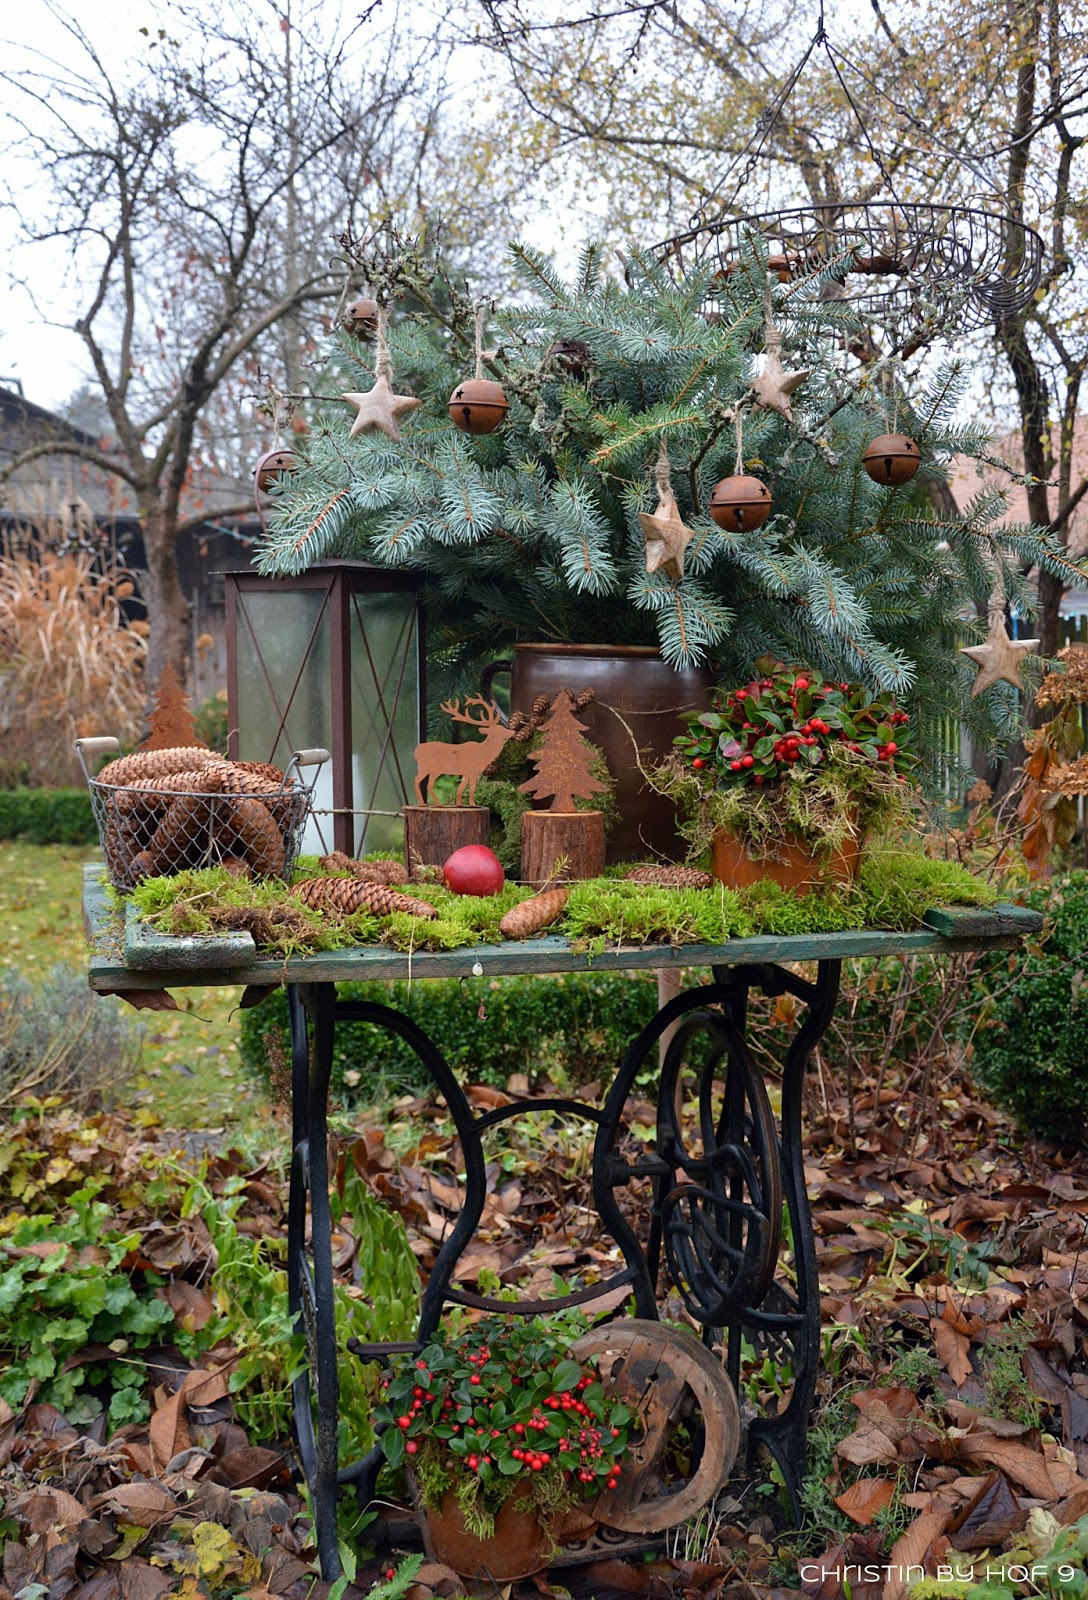 Hof 9 adventsstimmung im garten ein quasten diy for Winter gartendeko